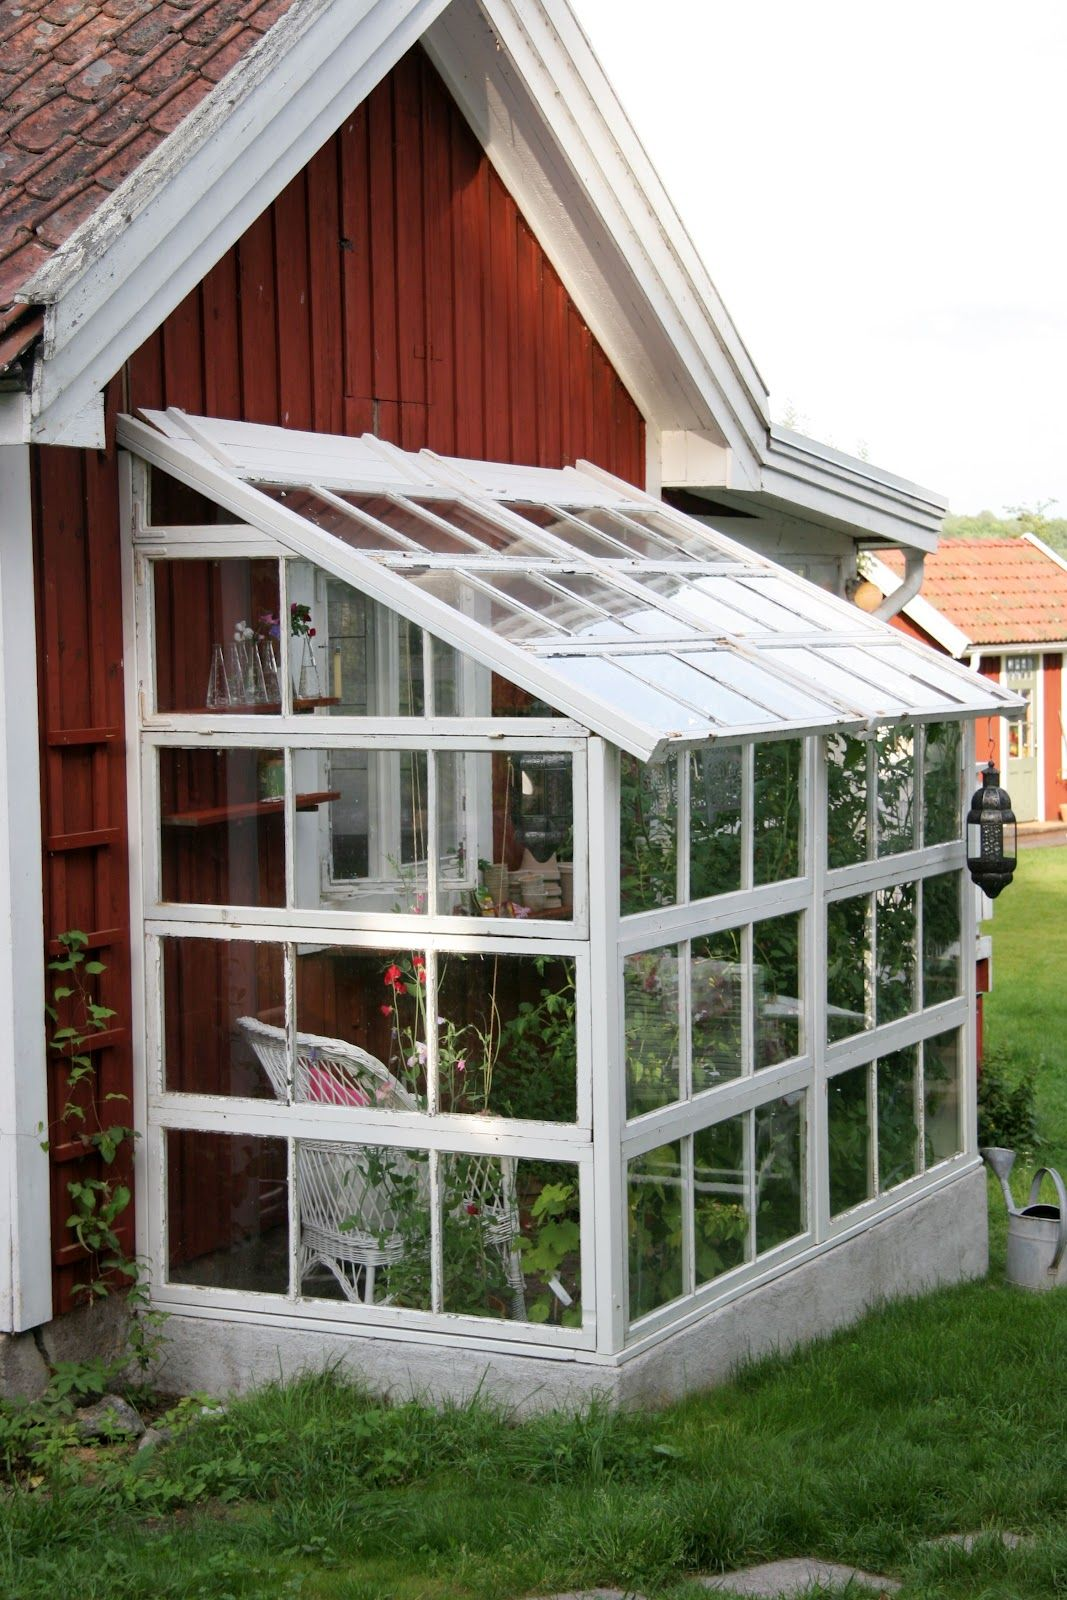 How To Build A Greenhouse From Old Windows Diy